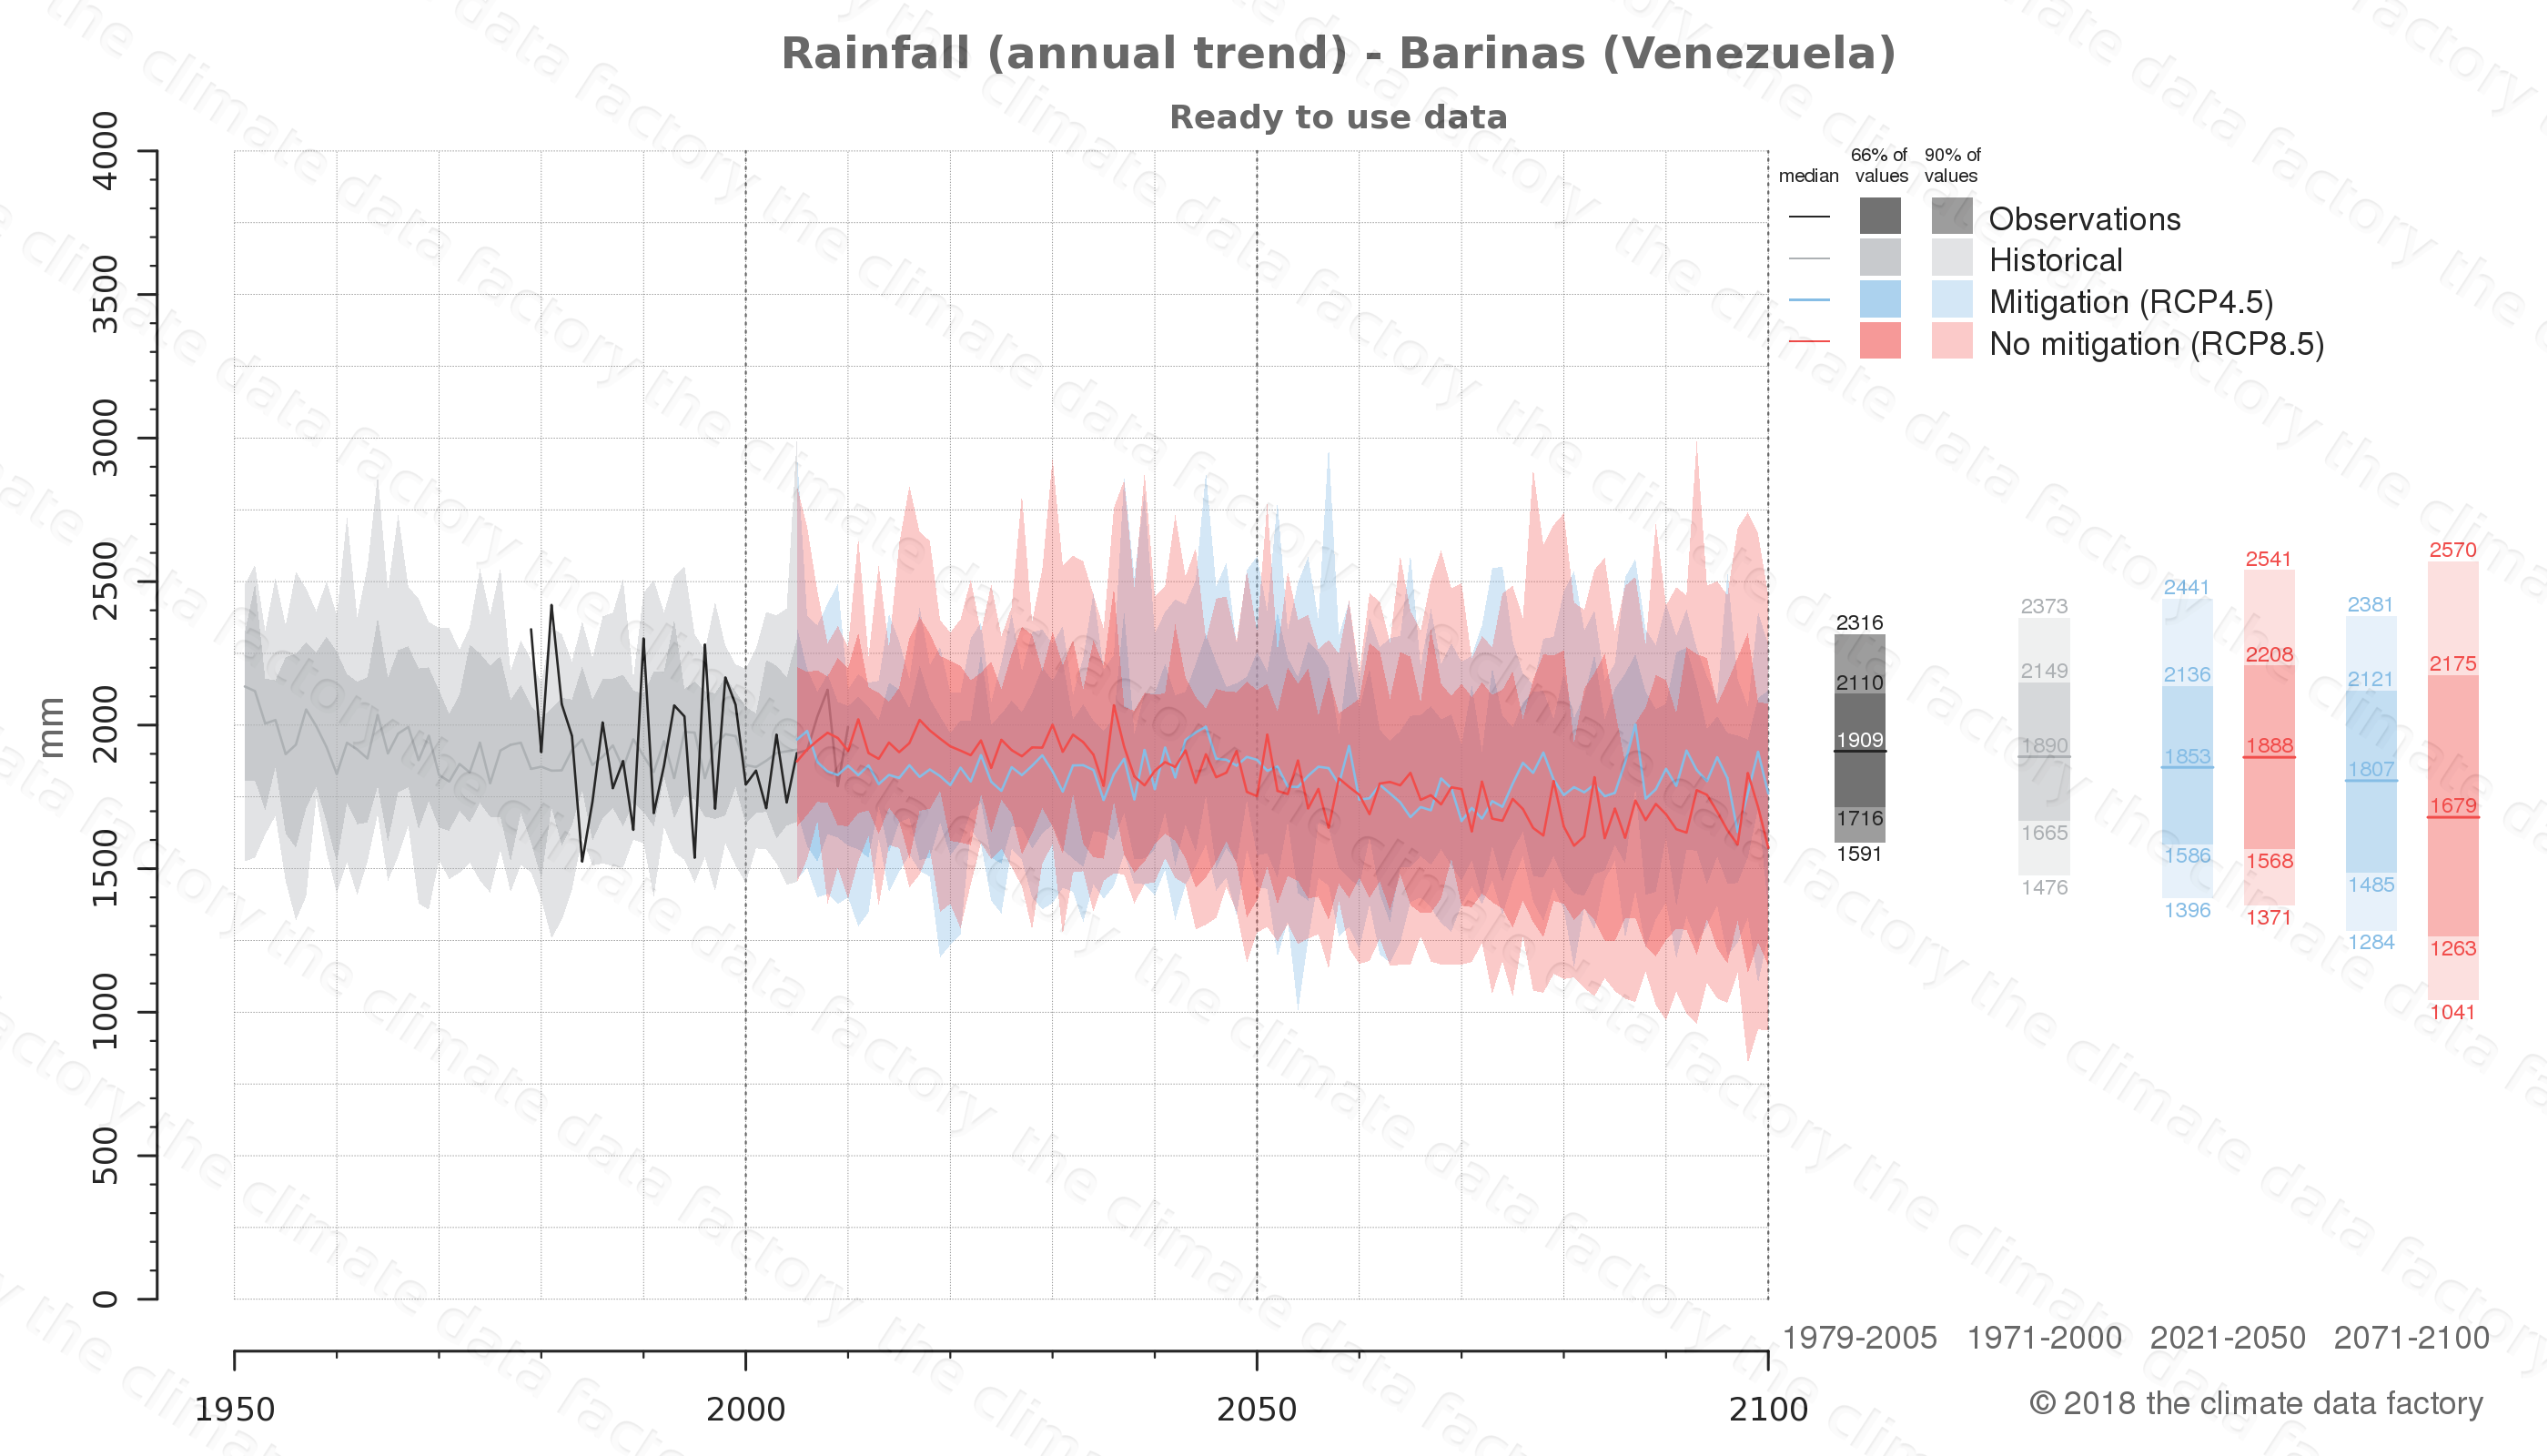 climate change data policy adaptation climate graph city data rainfall barinas venezuela